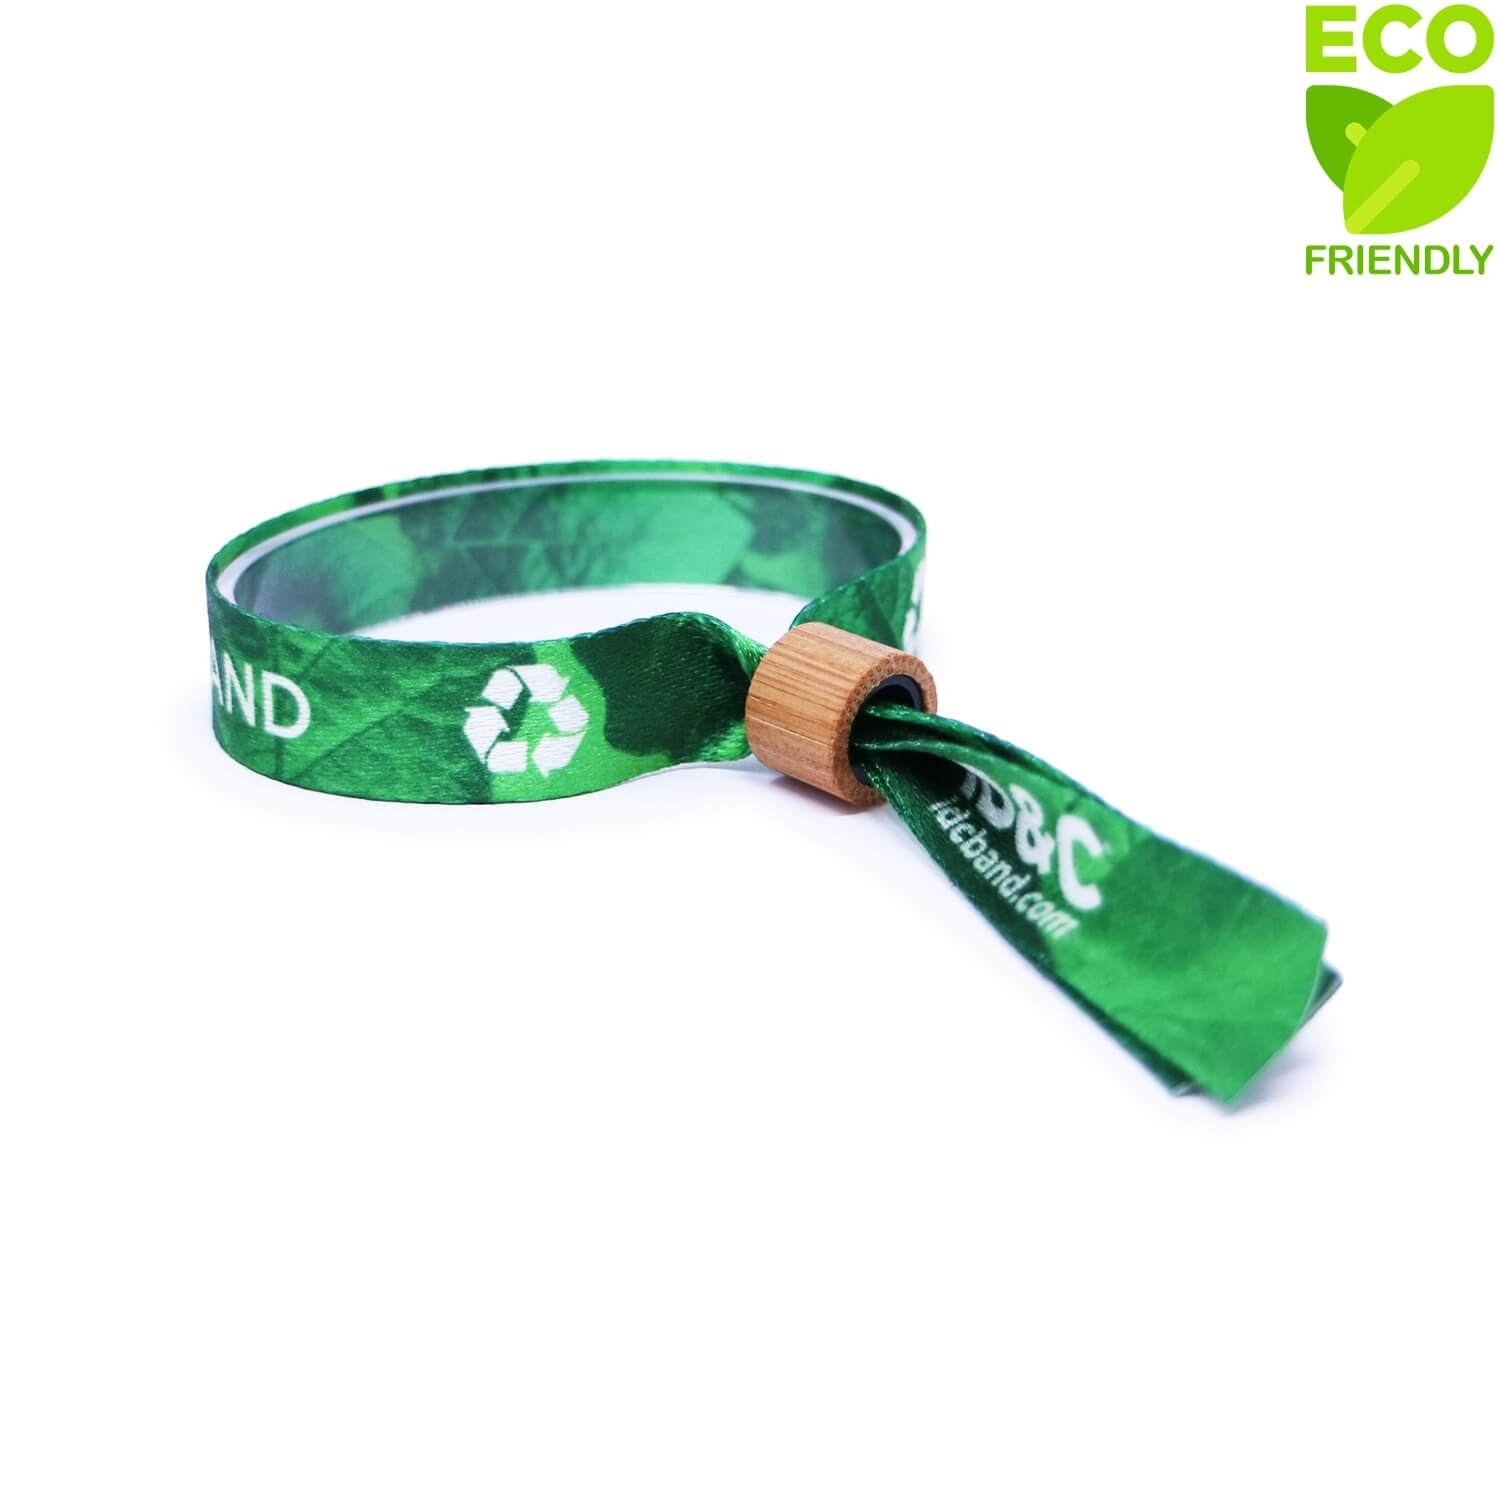 Recycled Wristbands - Fabric with Bamboo Lock